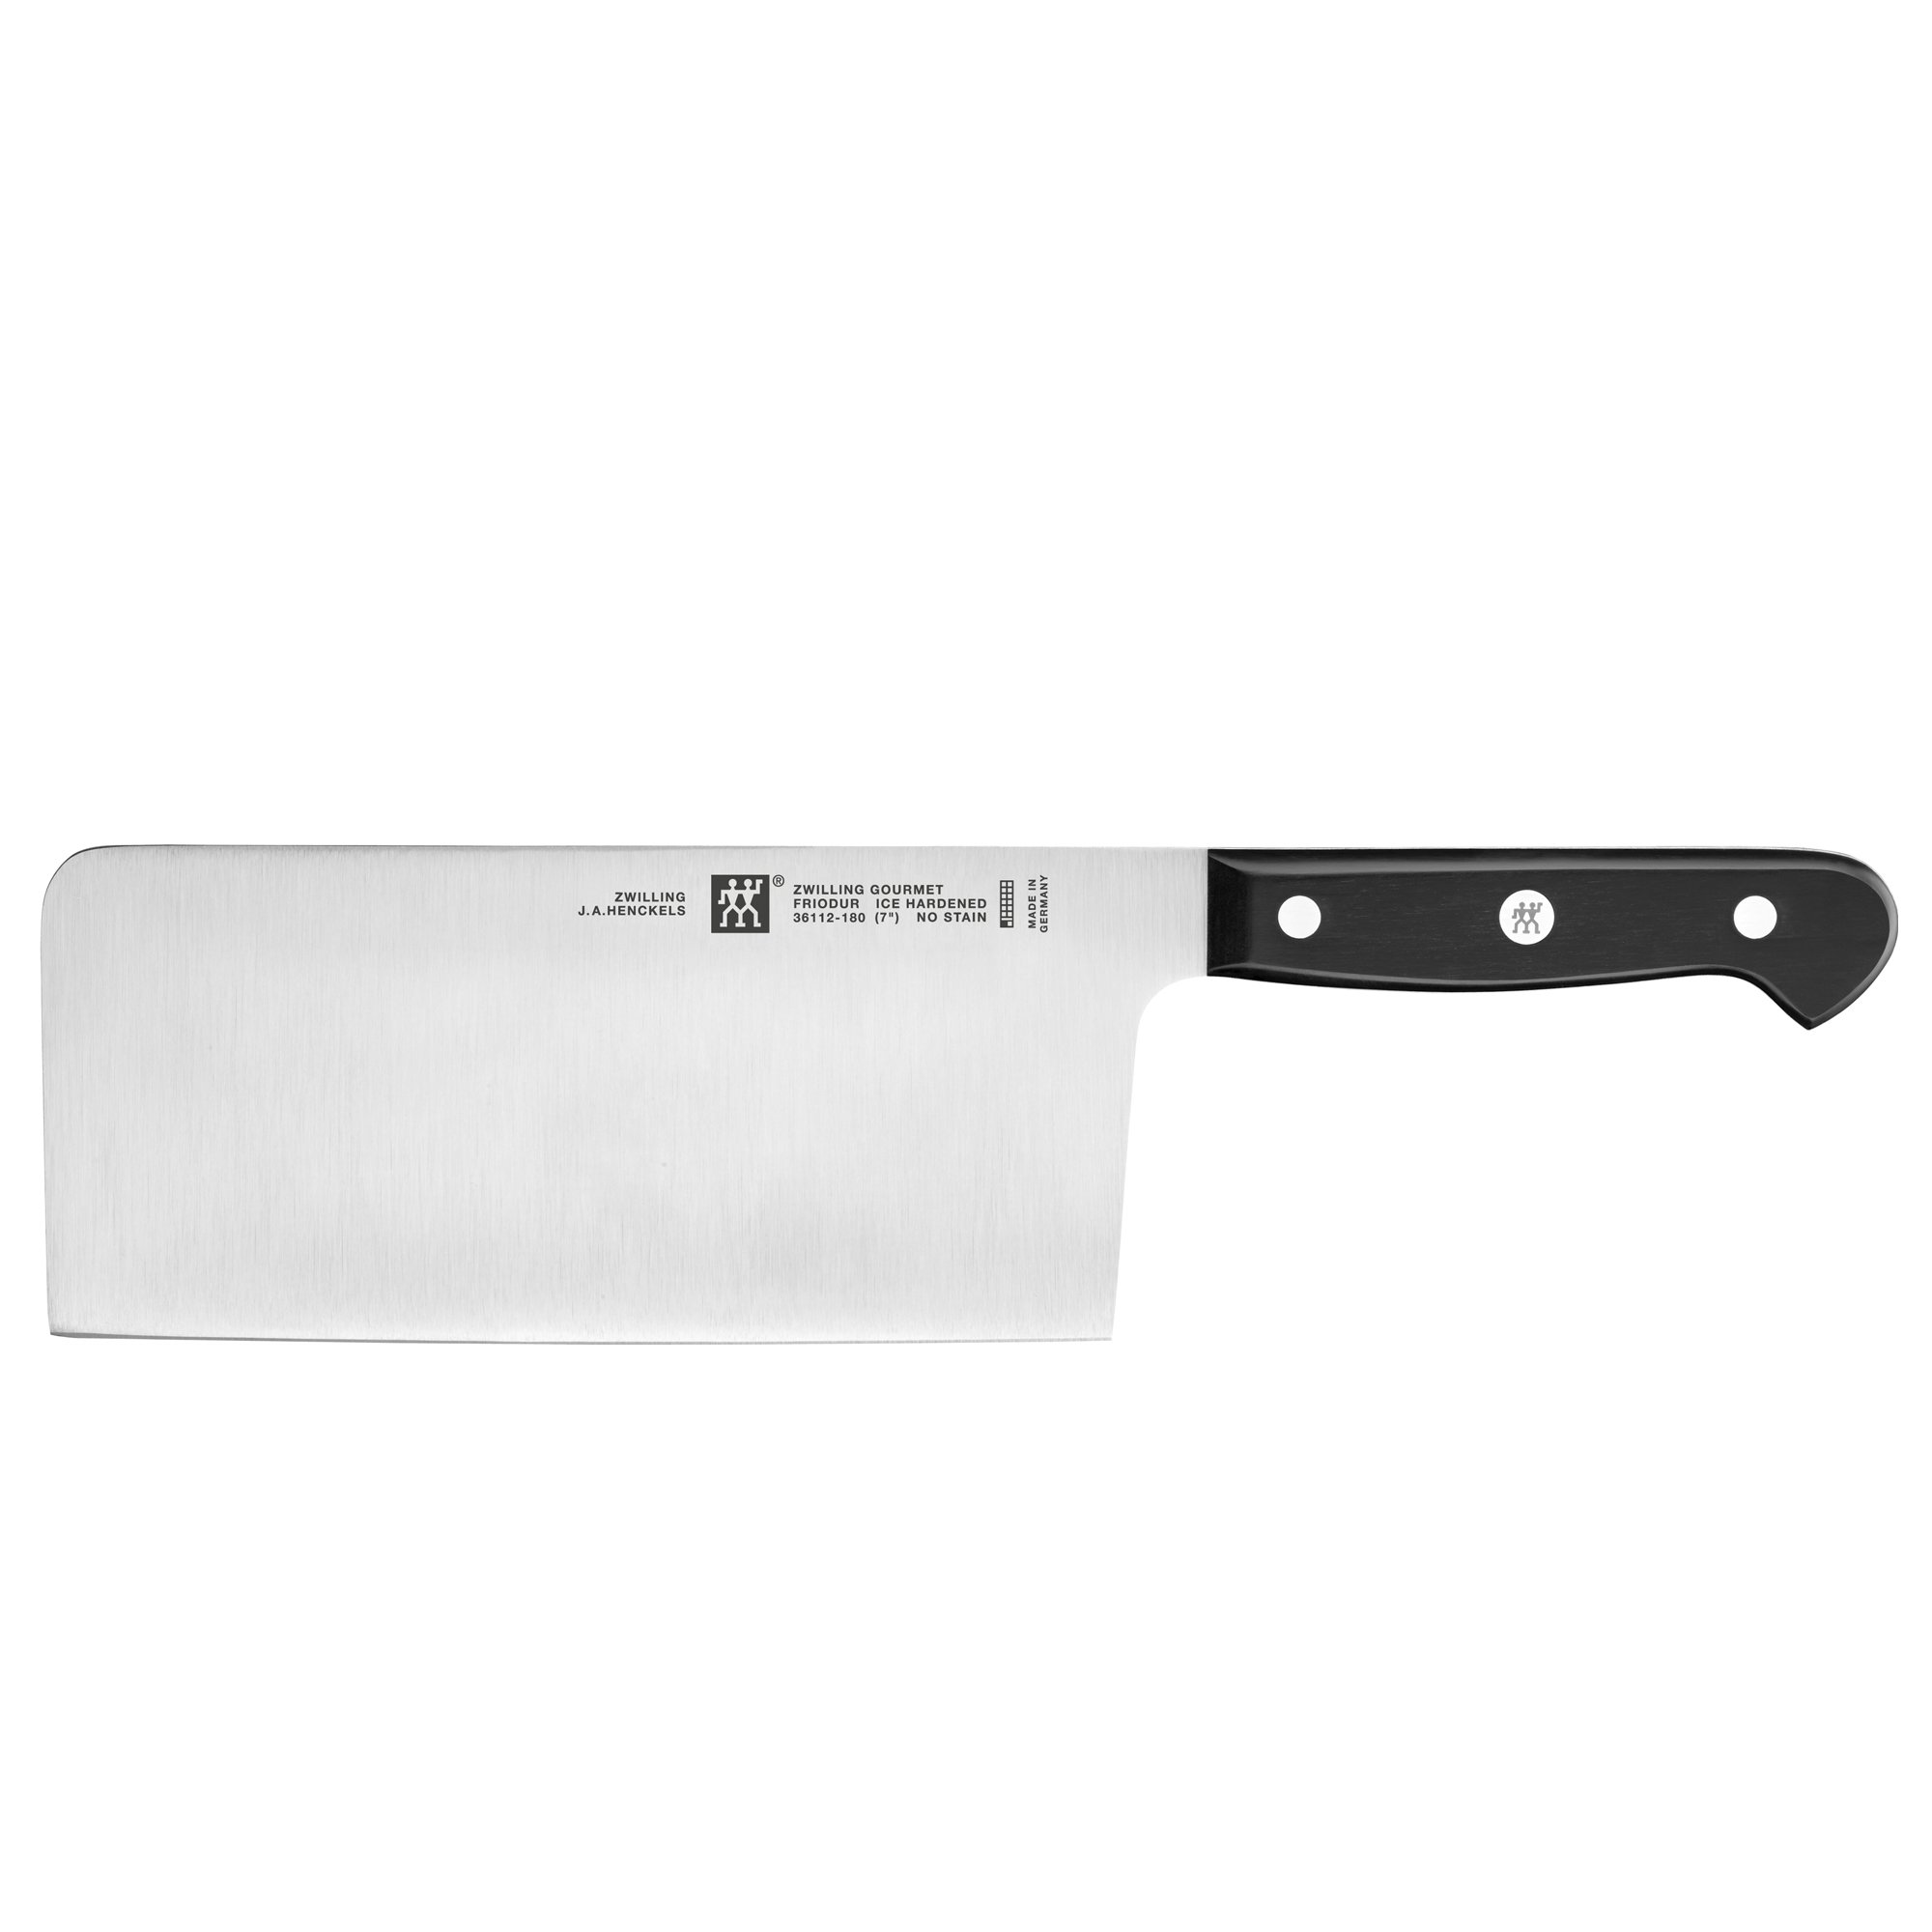 ZWILLING J.A. Henckels ZWILLING Gourmet 7'' Chinese Chefs Knife/Vegetable Cleaver,Black/Stainless Steel